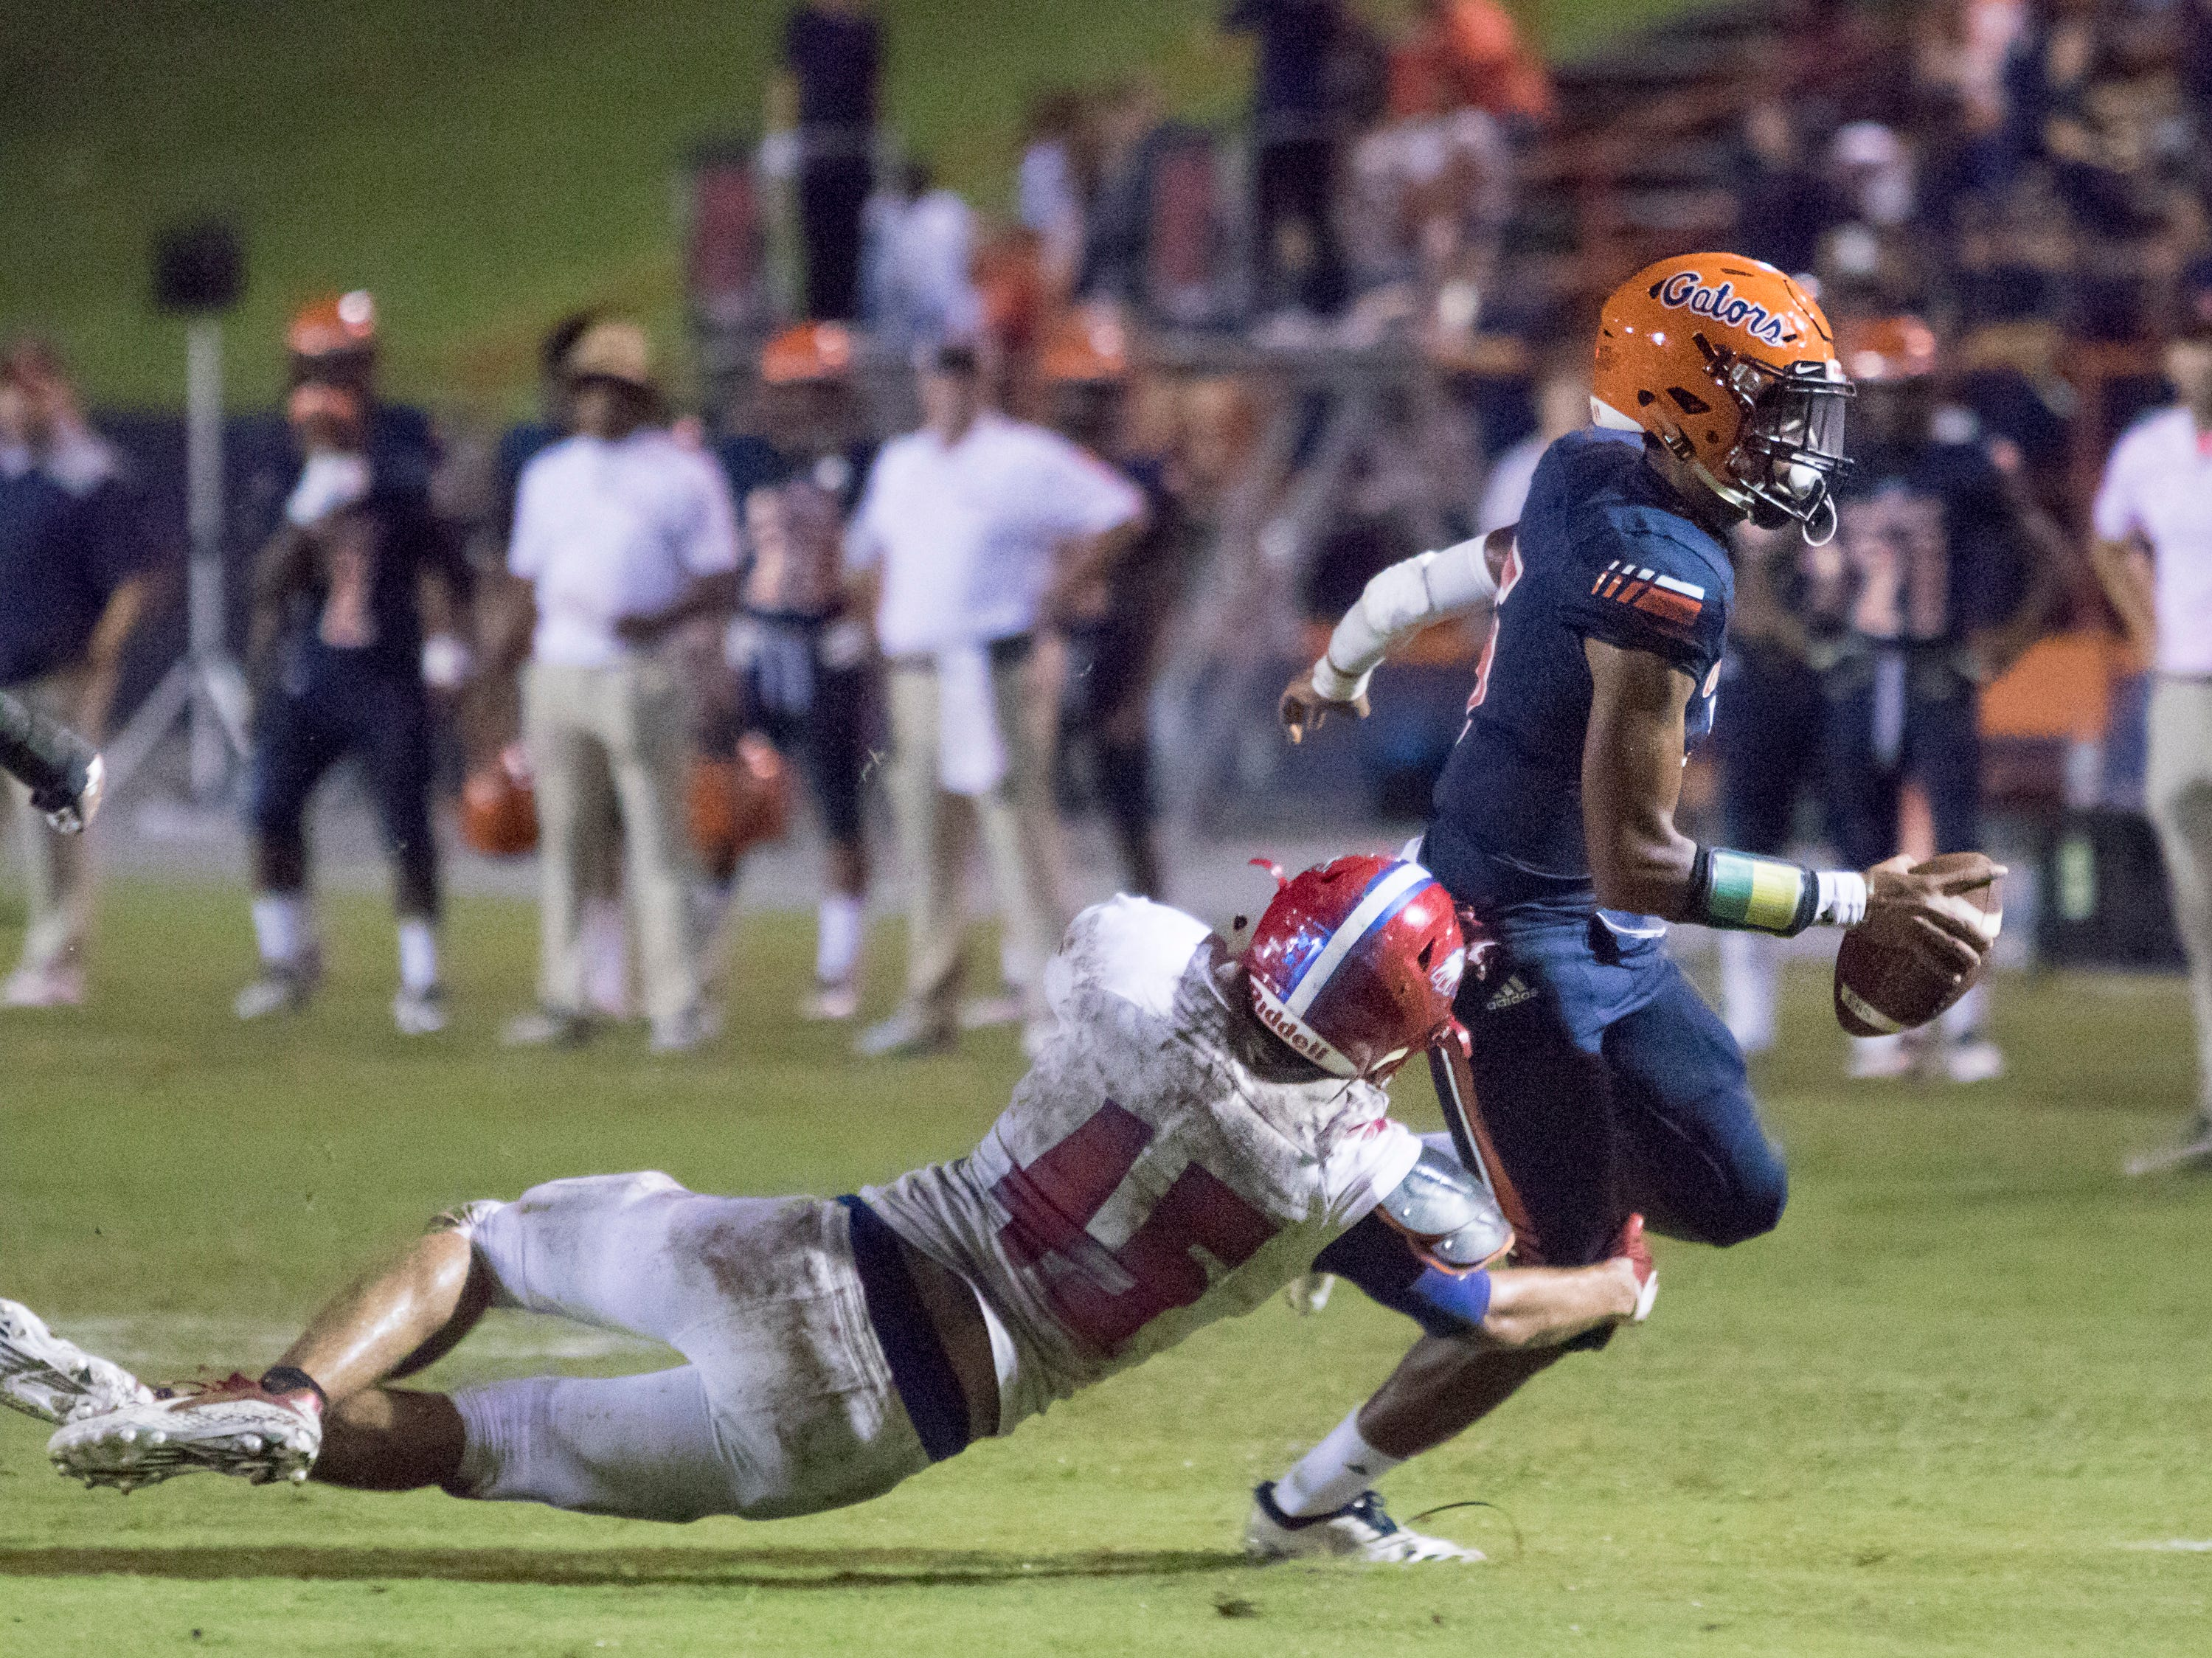 Quarterback Av Smith (5) slips the tackle of Wyatt Gill (45) during the Pine Forest vs Escambia football game at Escambia High School in Pensacola on Friday, September 28, 2018.